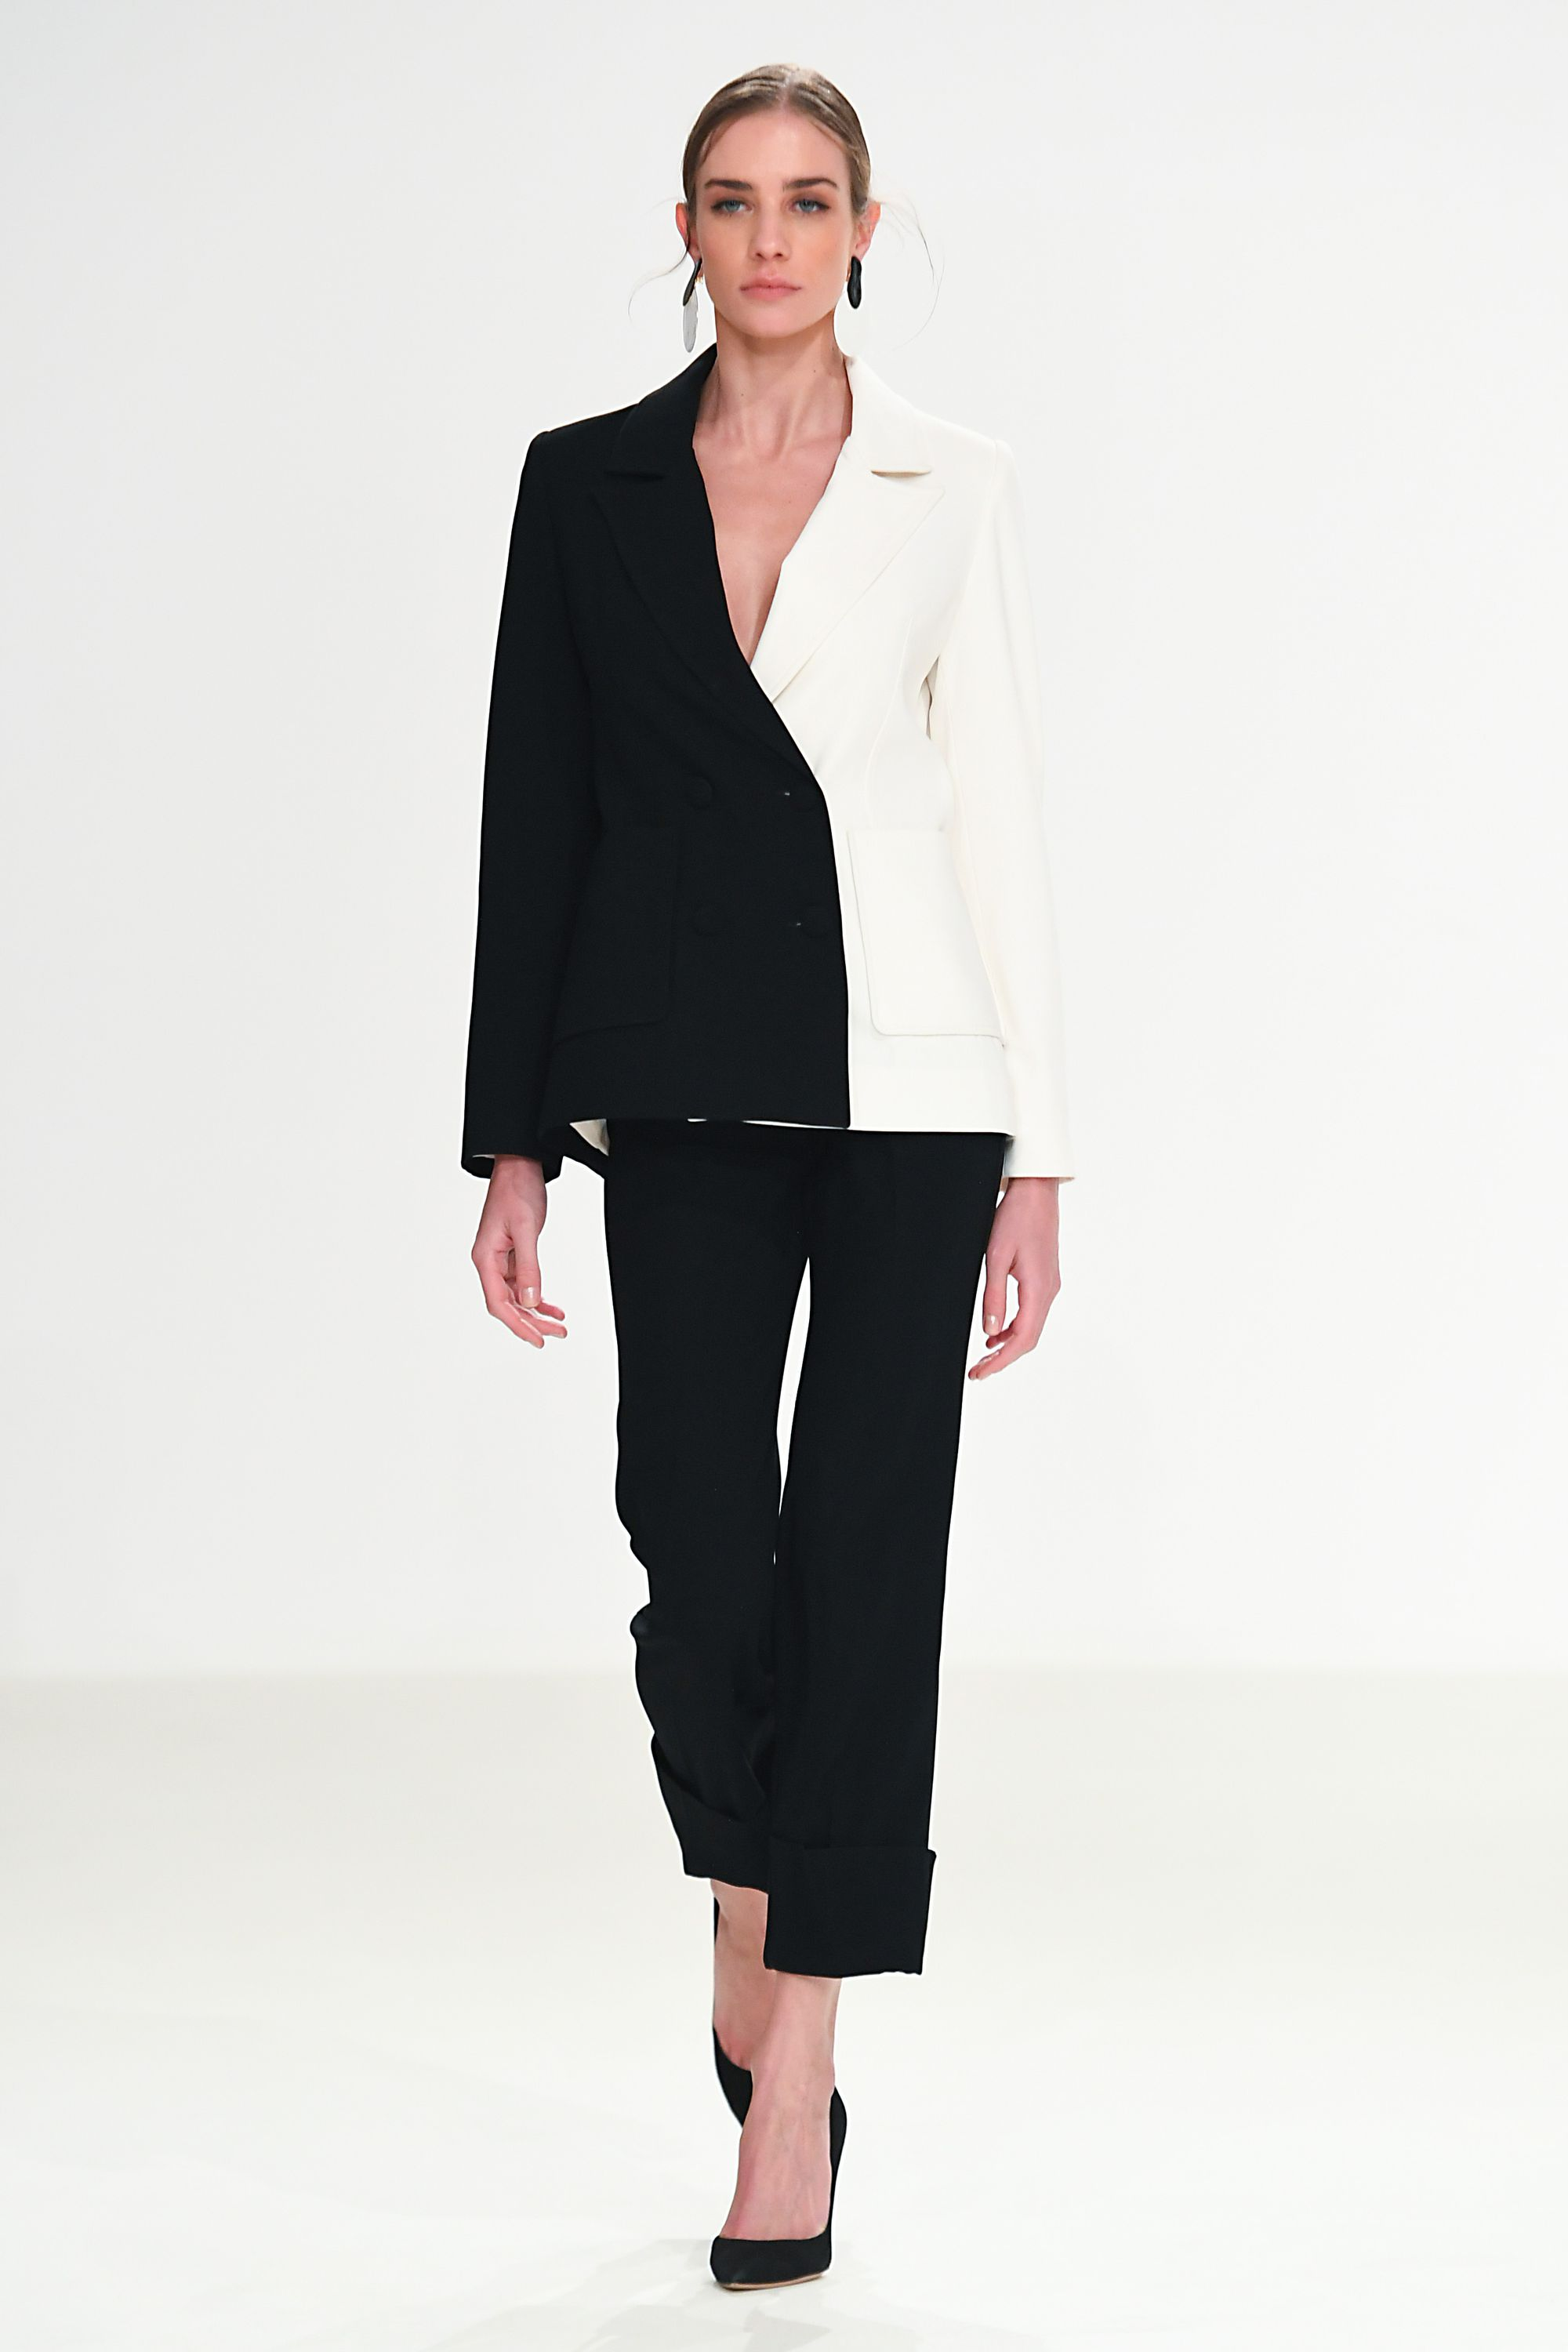 Whitney Blazer - Black and White by Jessica K on curated-crowd.com